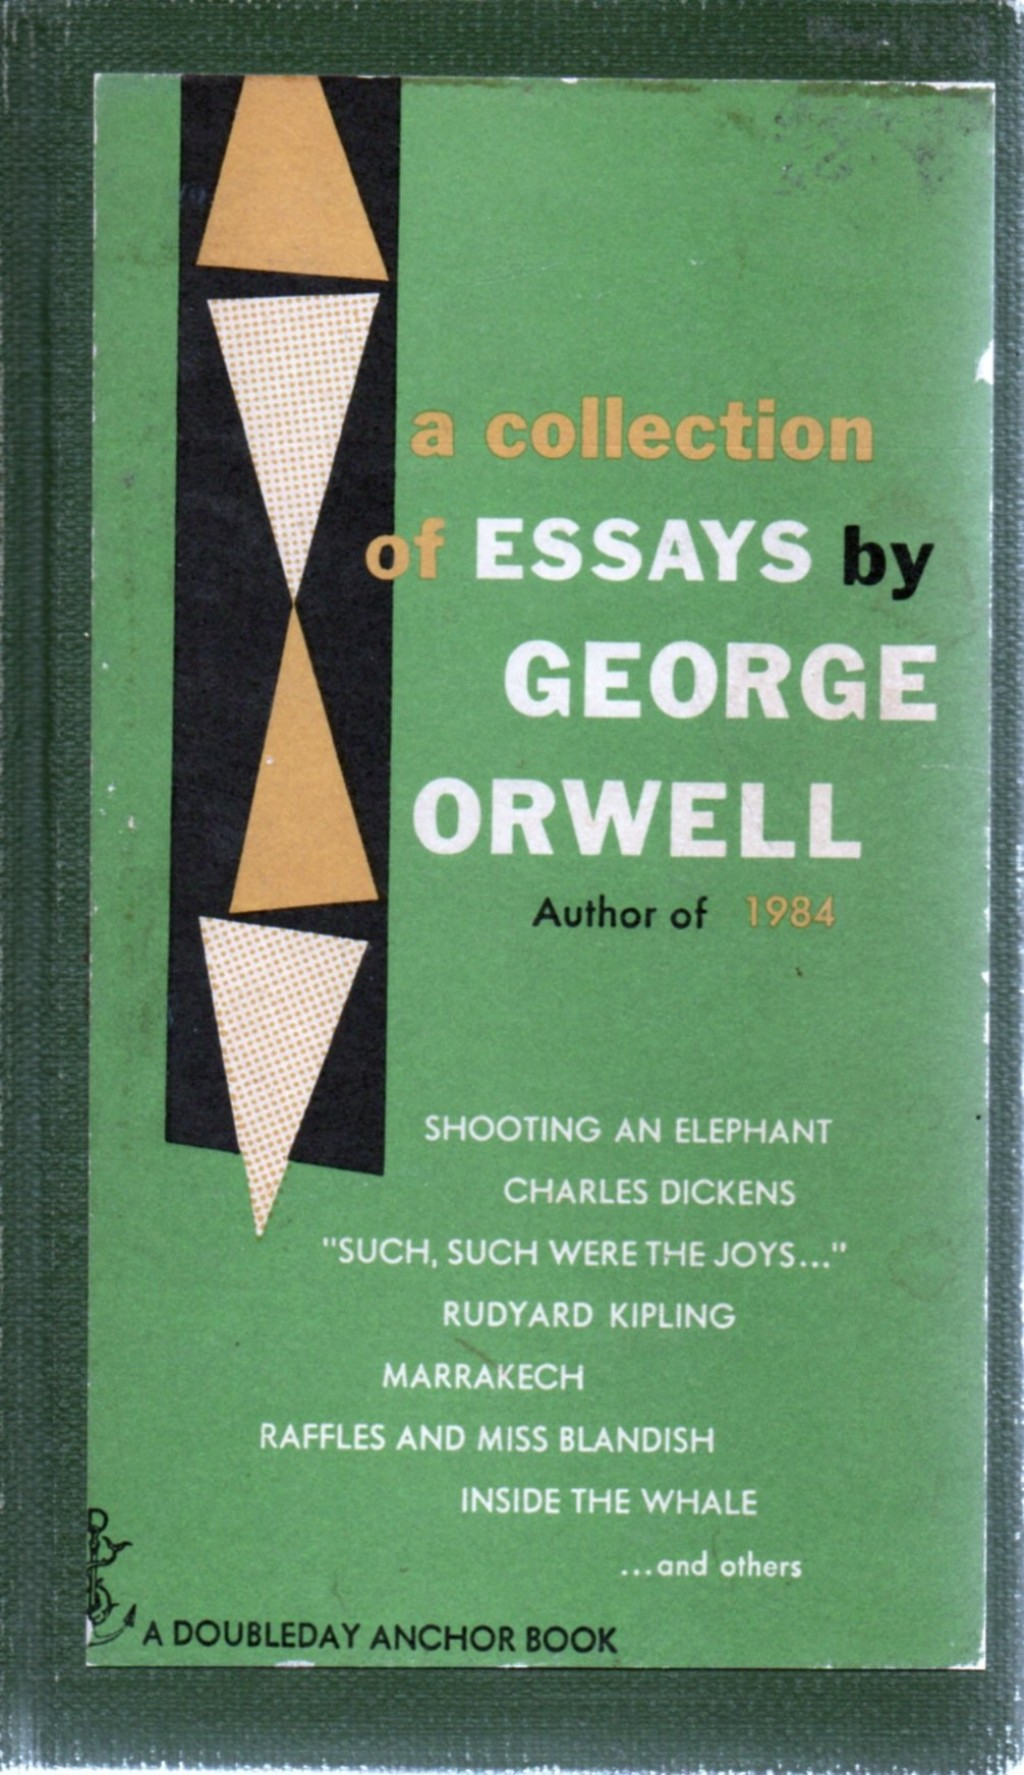 009 George Orwell Essays Essay Example Frightening 1984 Summary Collected Pdf On Writing Large